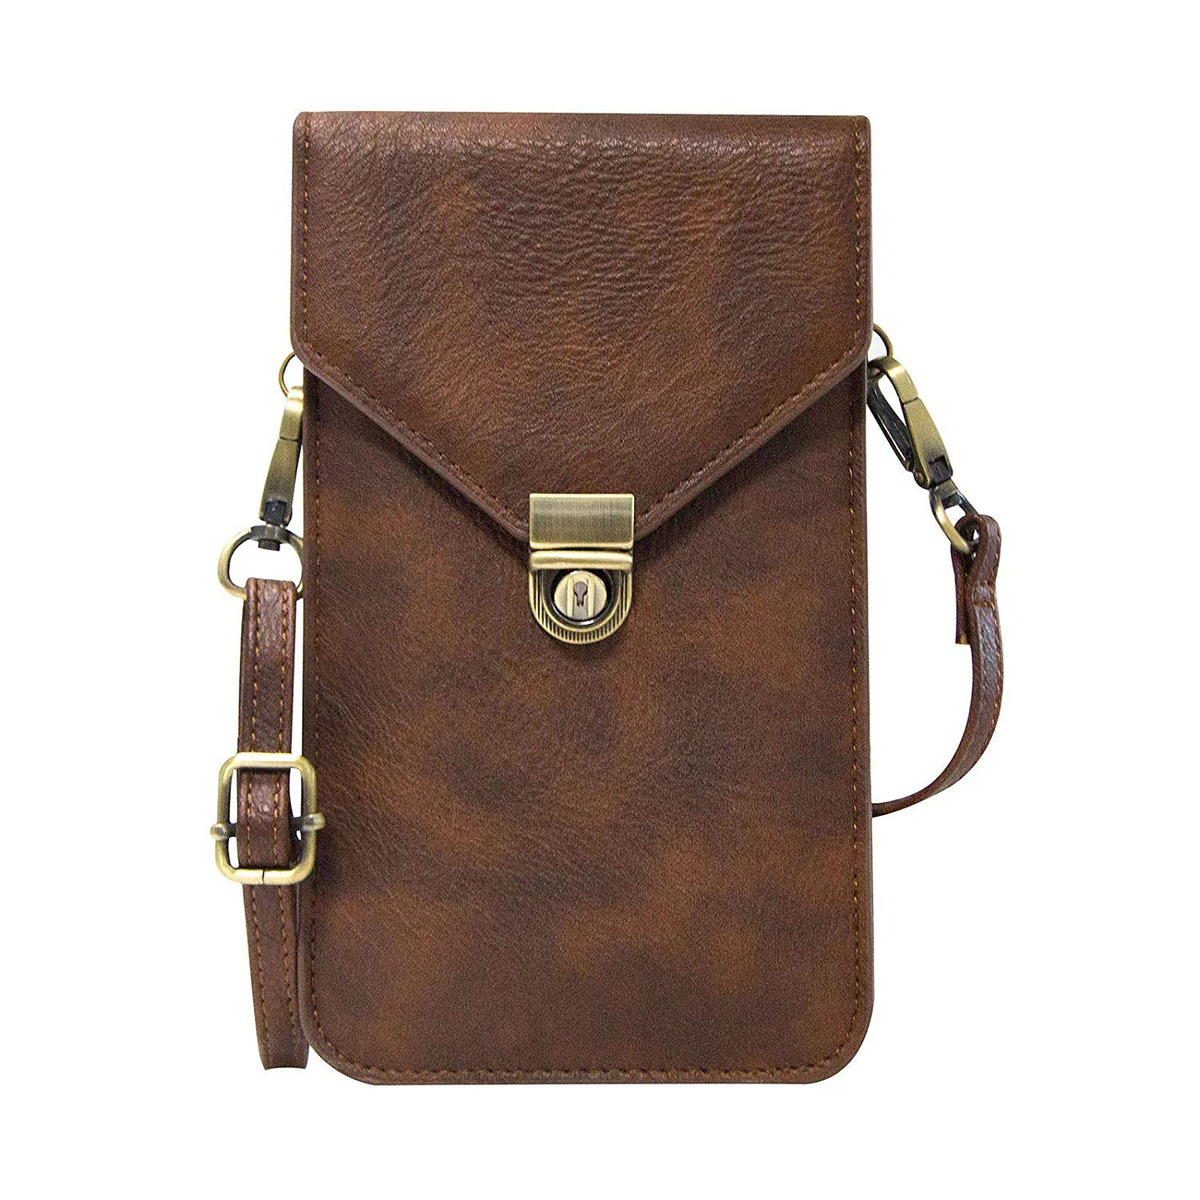 430d4b329cc6 Universal Crossbody Cell Phone Bag For Woman, Dteck Leather